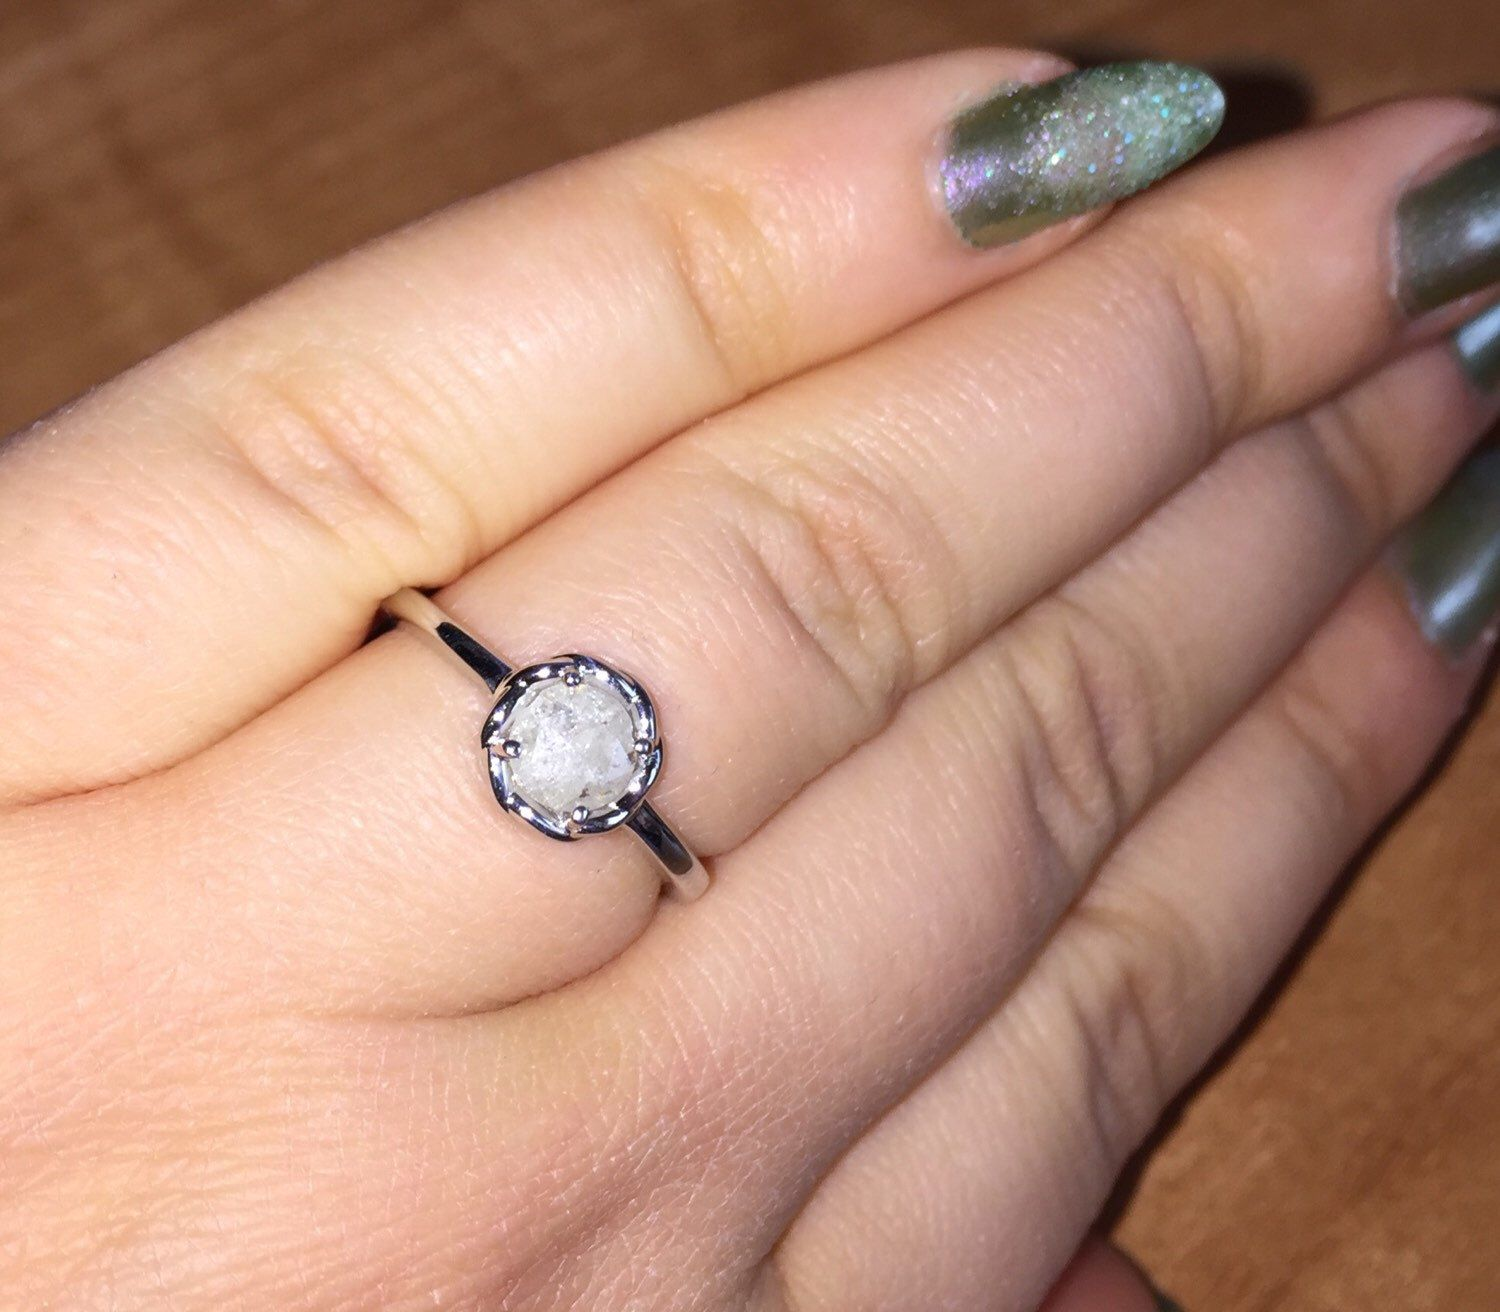 Raw diamond Engagement ring, Meaningful proposal ring,  Rose Cut diamond rings, Ring as Unique as YOU ARE, affordable proposal rings by BridalRings on Etsy https://www.etsy.com/listing/251144292/raw-diamond-engagement-ring-meaningful